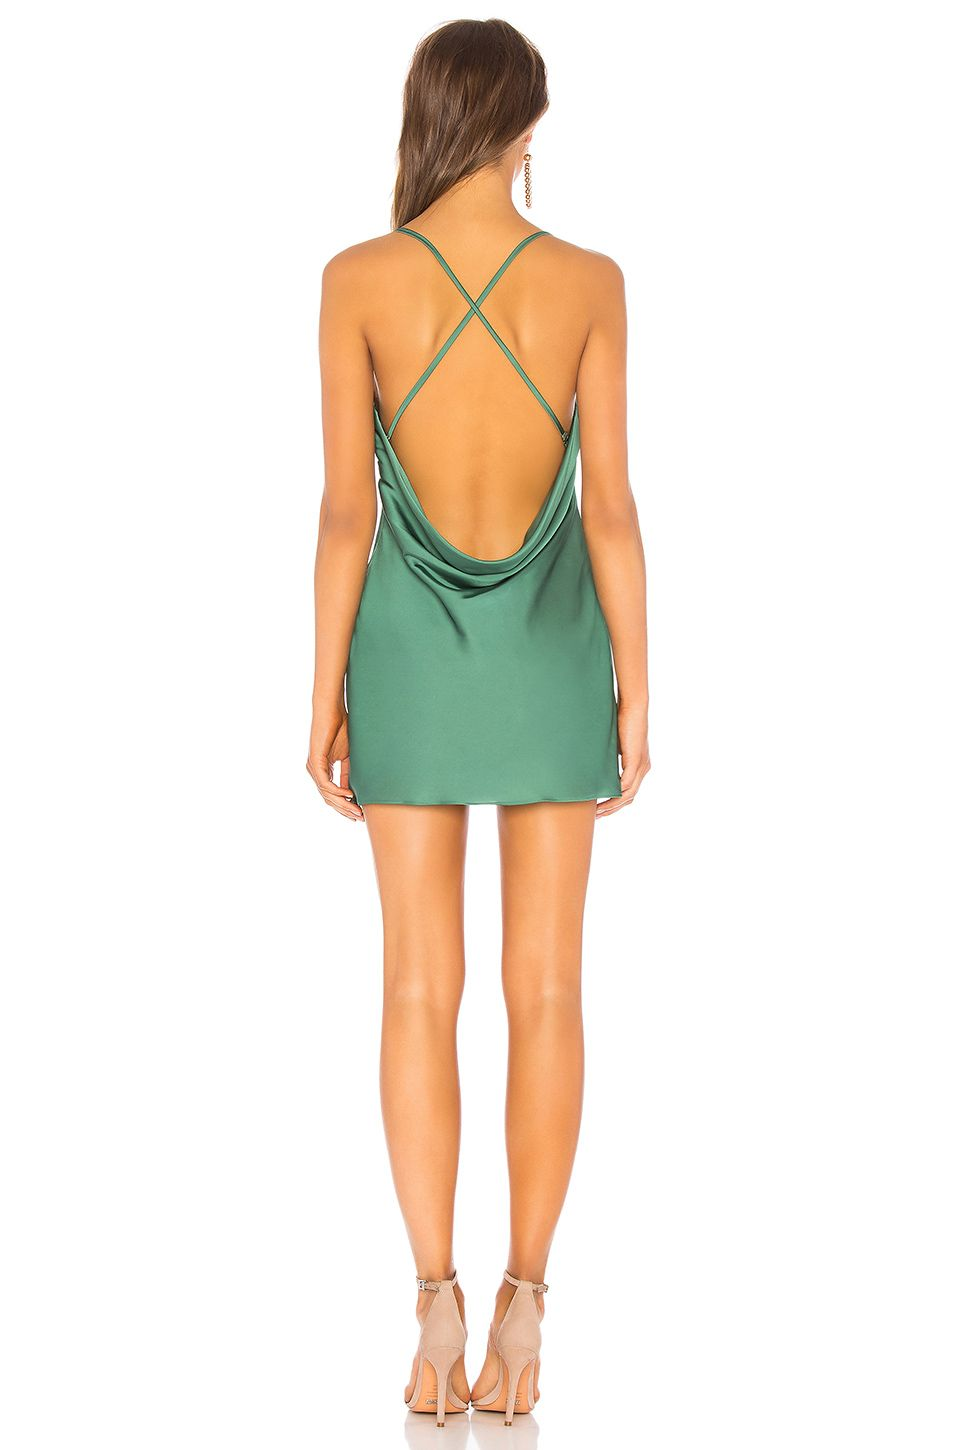 Lovers Friends Boa Mini Dress In Green Revolve In 2020 Revolve Clothing Fashion Black Cocktail Dress Discover the latest dresses with asos. pinterest